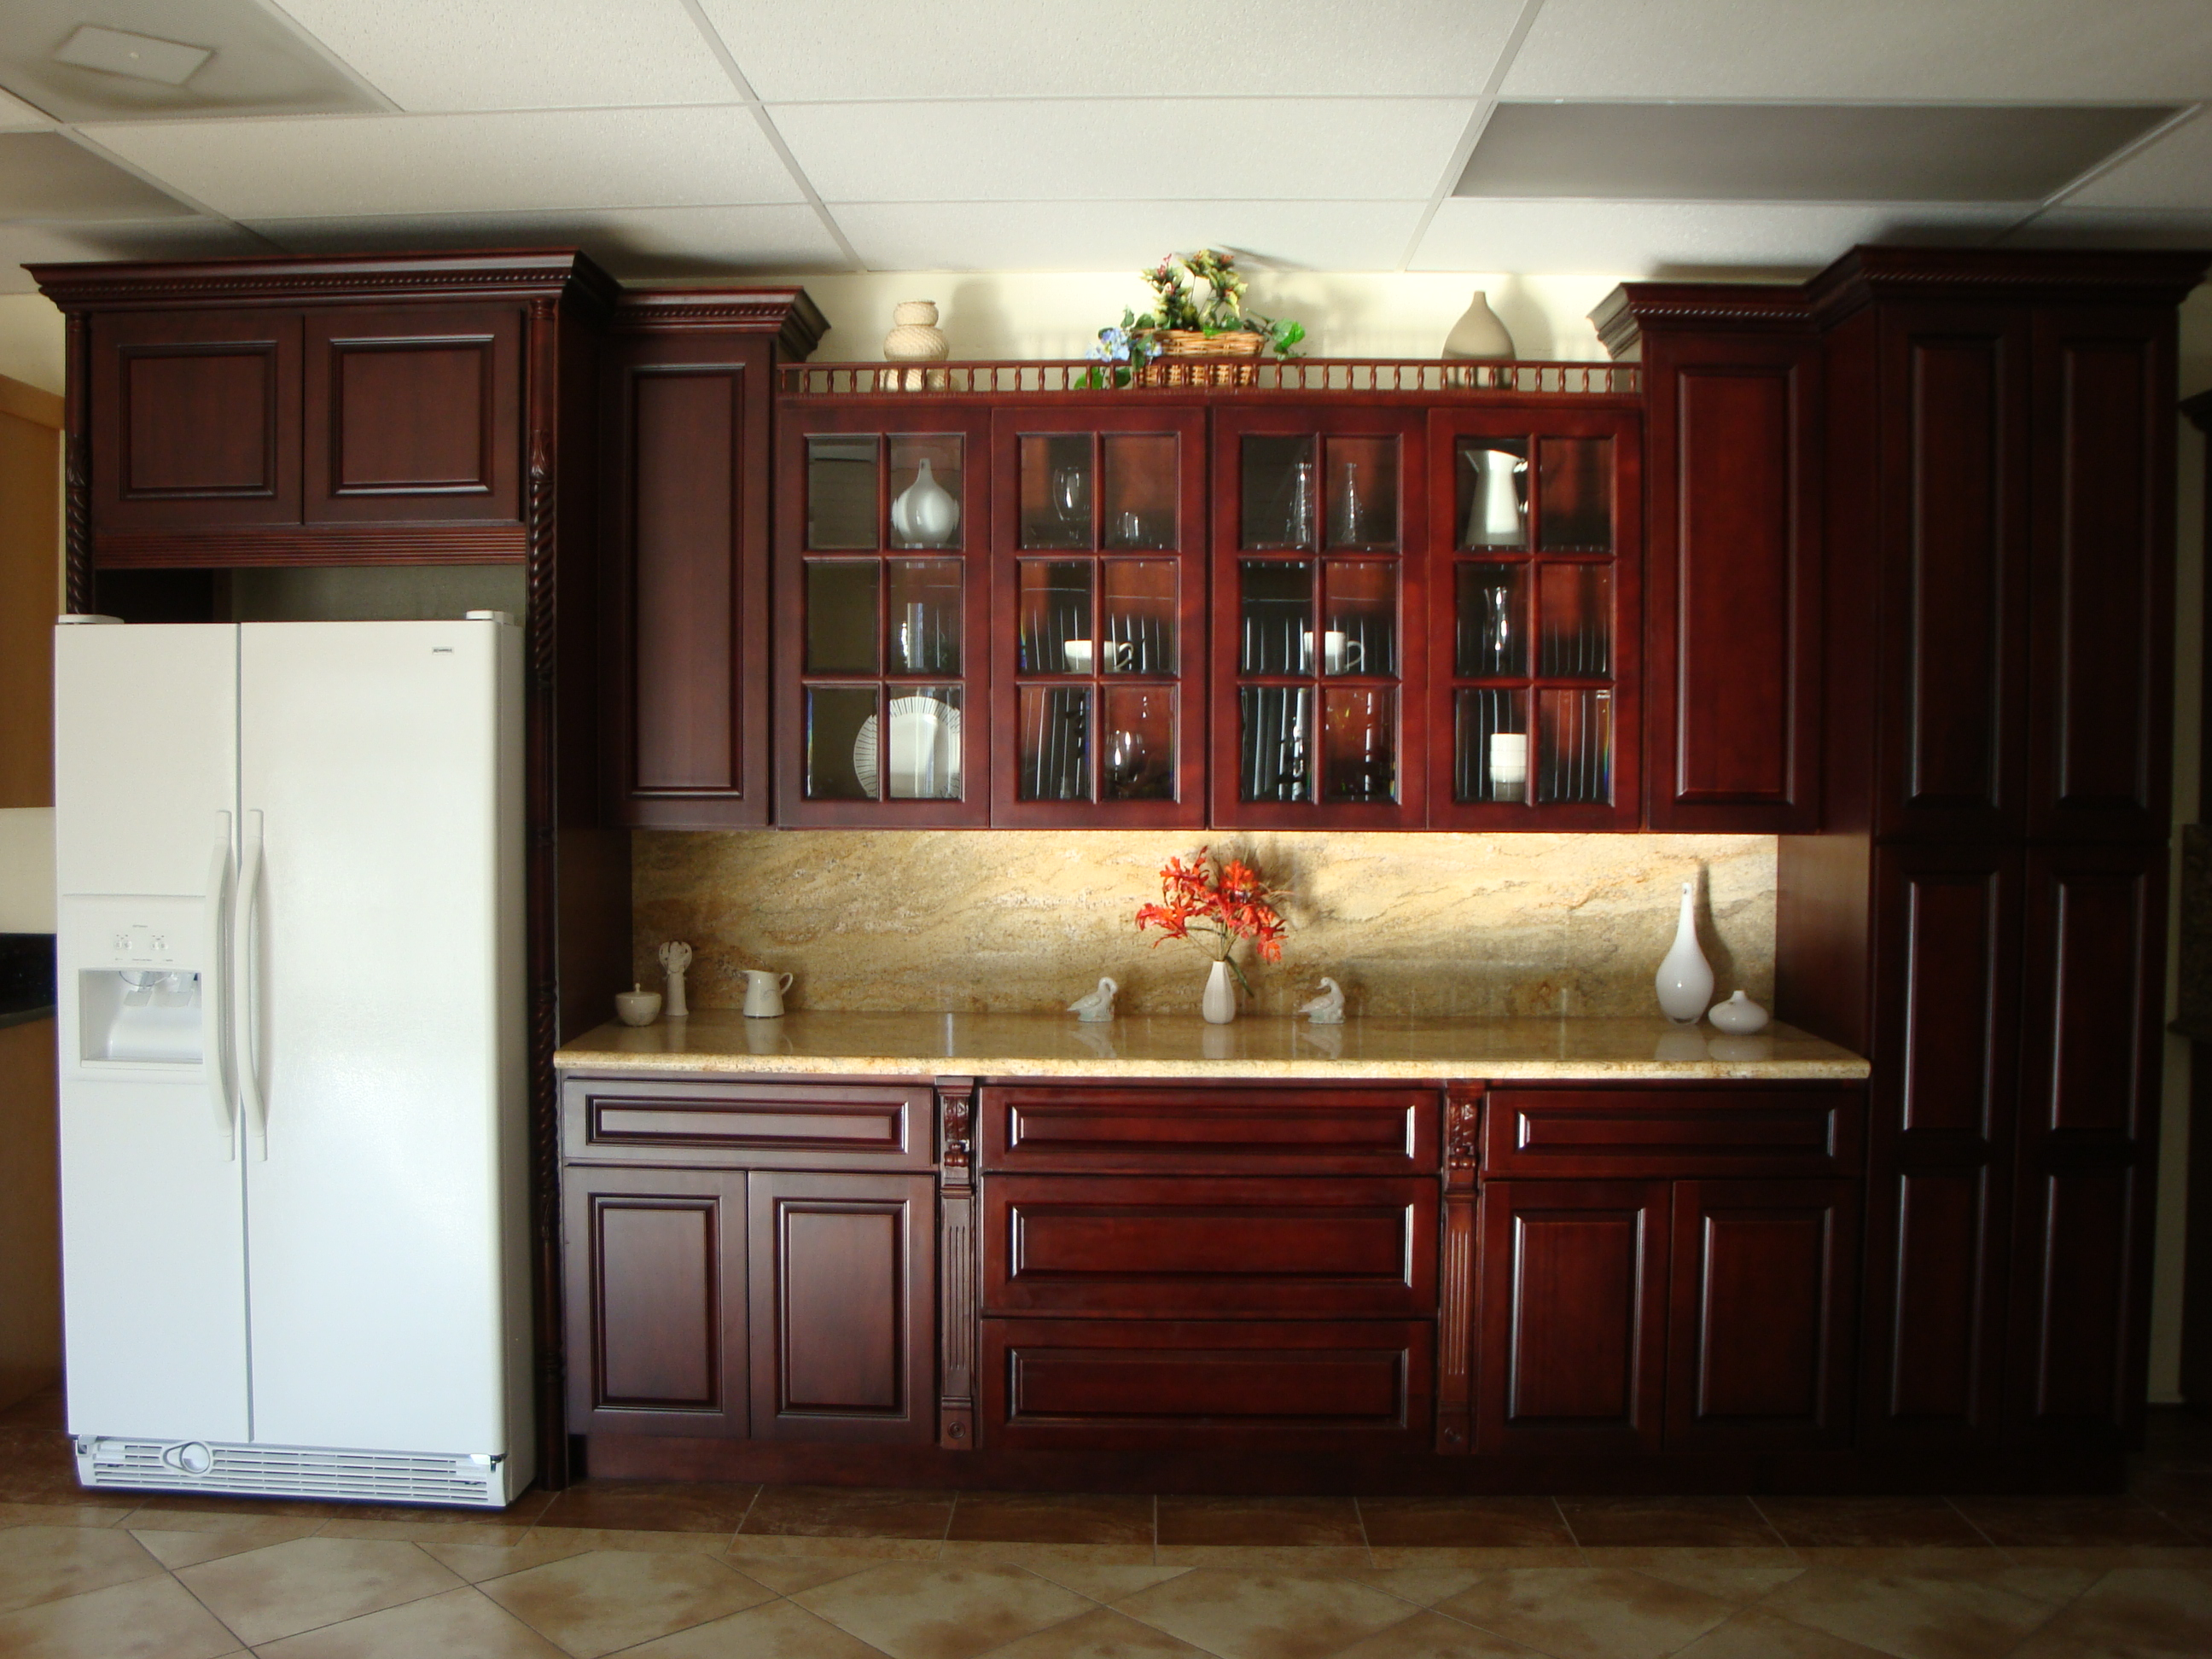 Kitchen Cabinets Cherry Wood Decorating With Cherry Wood Kitchen Cabinets My Kitchen